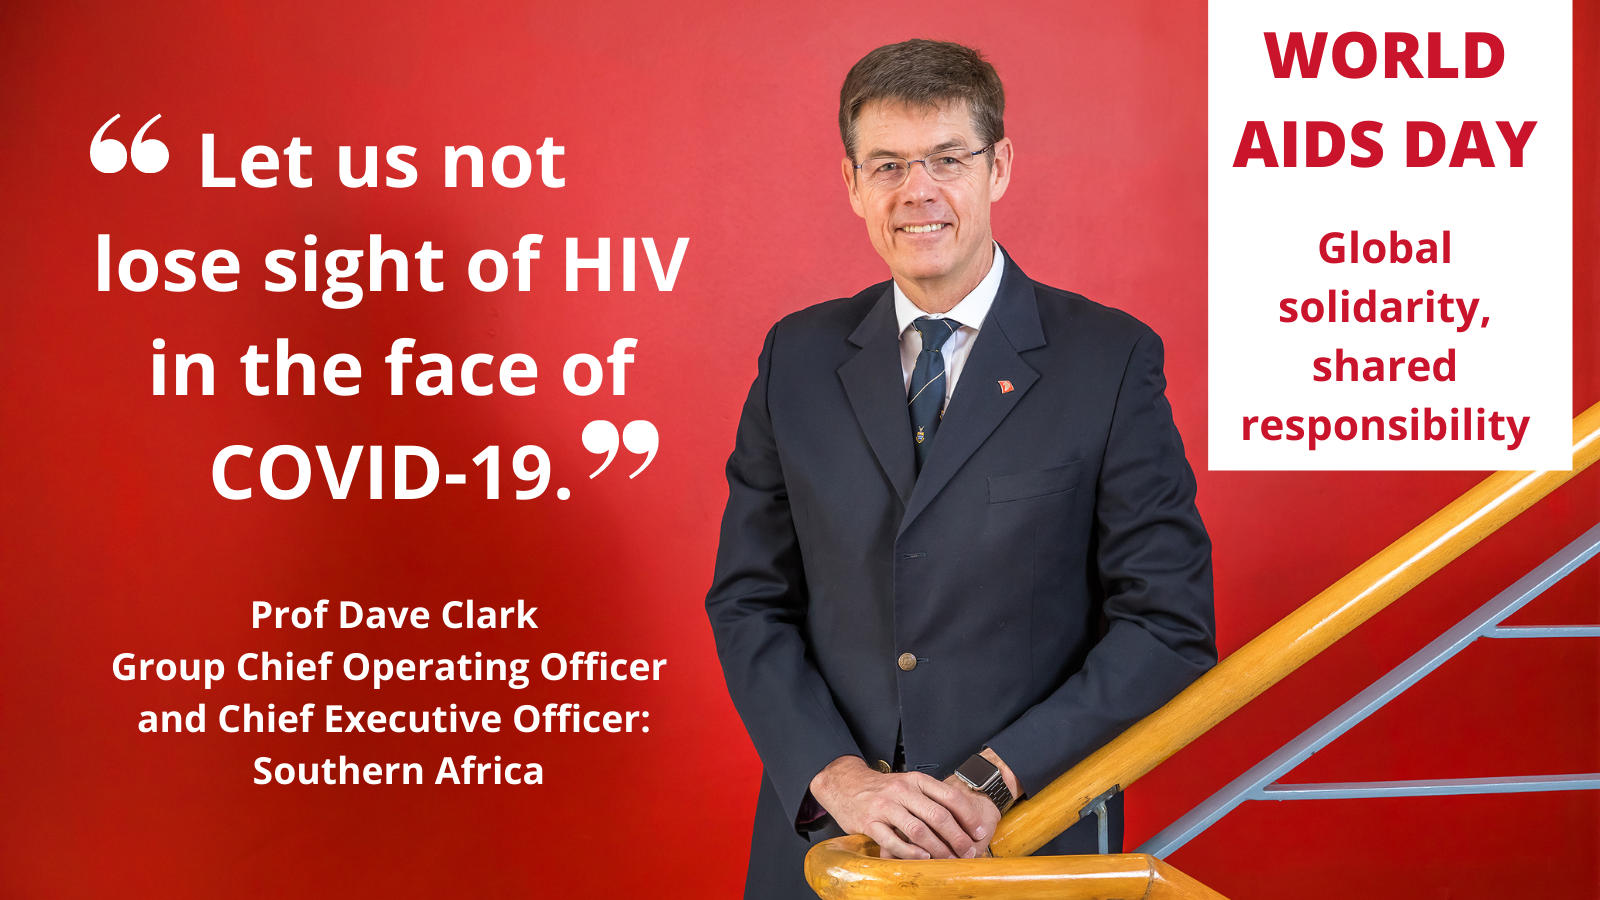 World Aids Day 2020: Gains against HIV should not be derailed by COVID-19